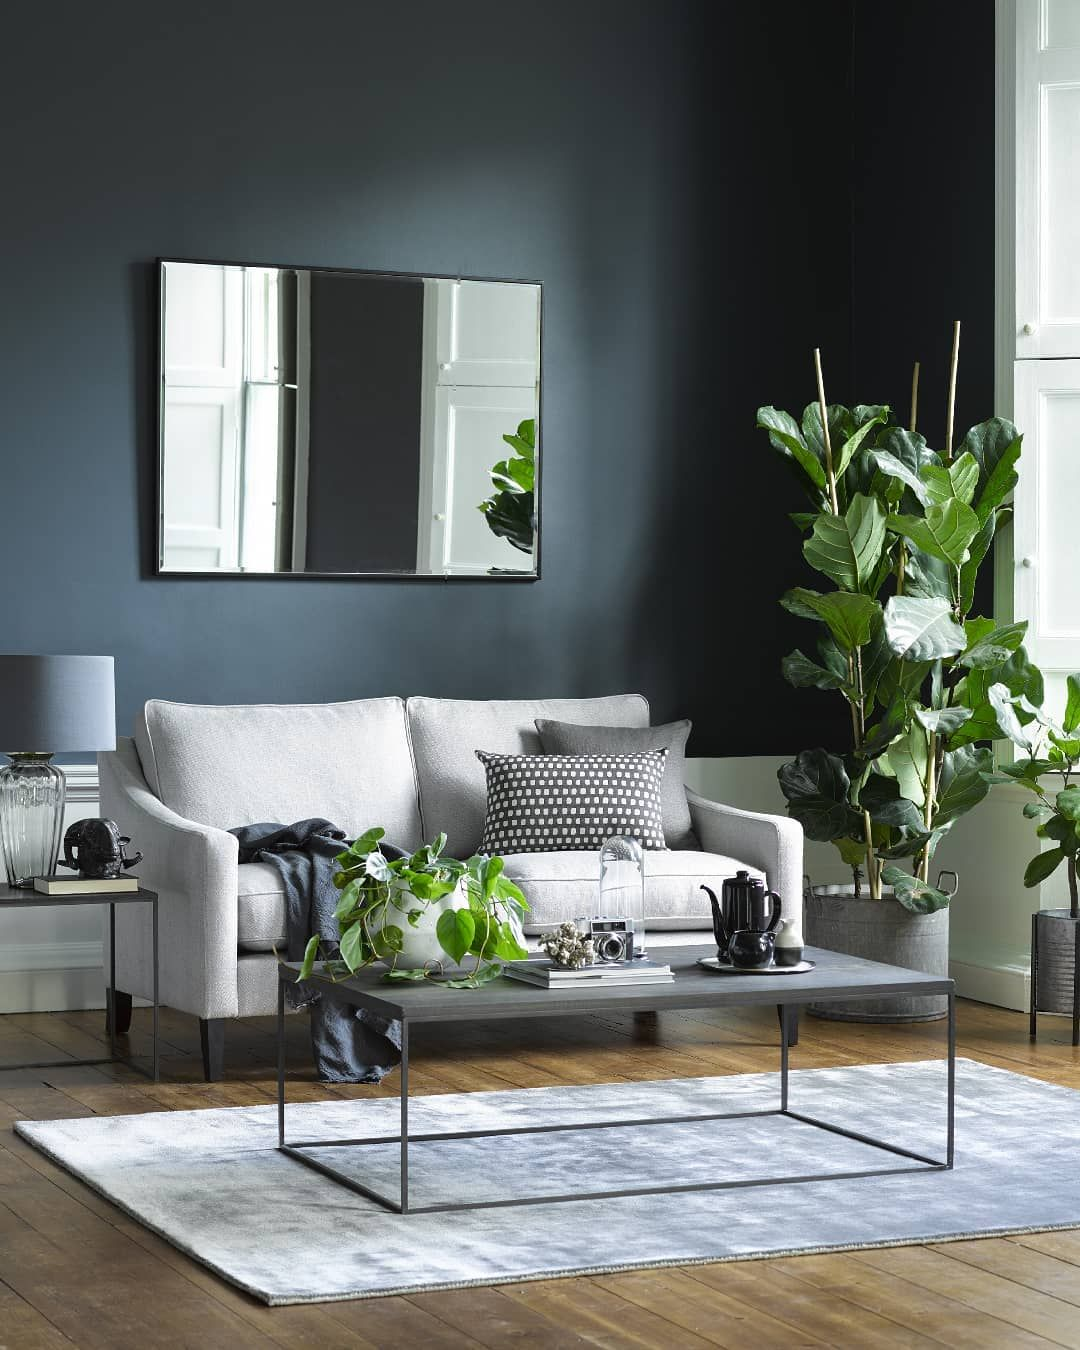 Sofa Com On Instagram You Re Going To Want To Sit Down For This This Is The Last Day Of Our Grey Sofa Living Room Grey Walls Living Room Rugs In Living Room